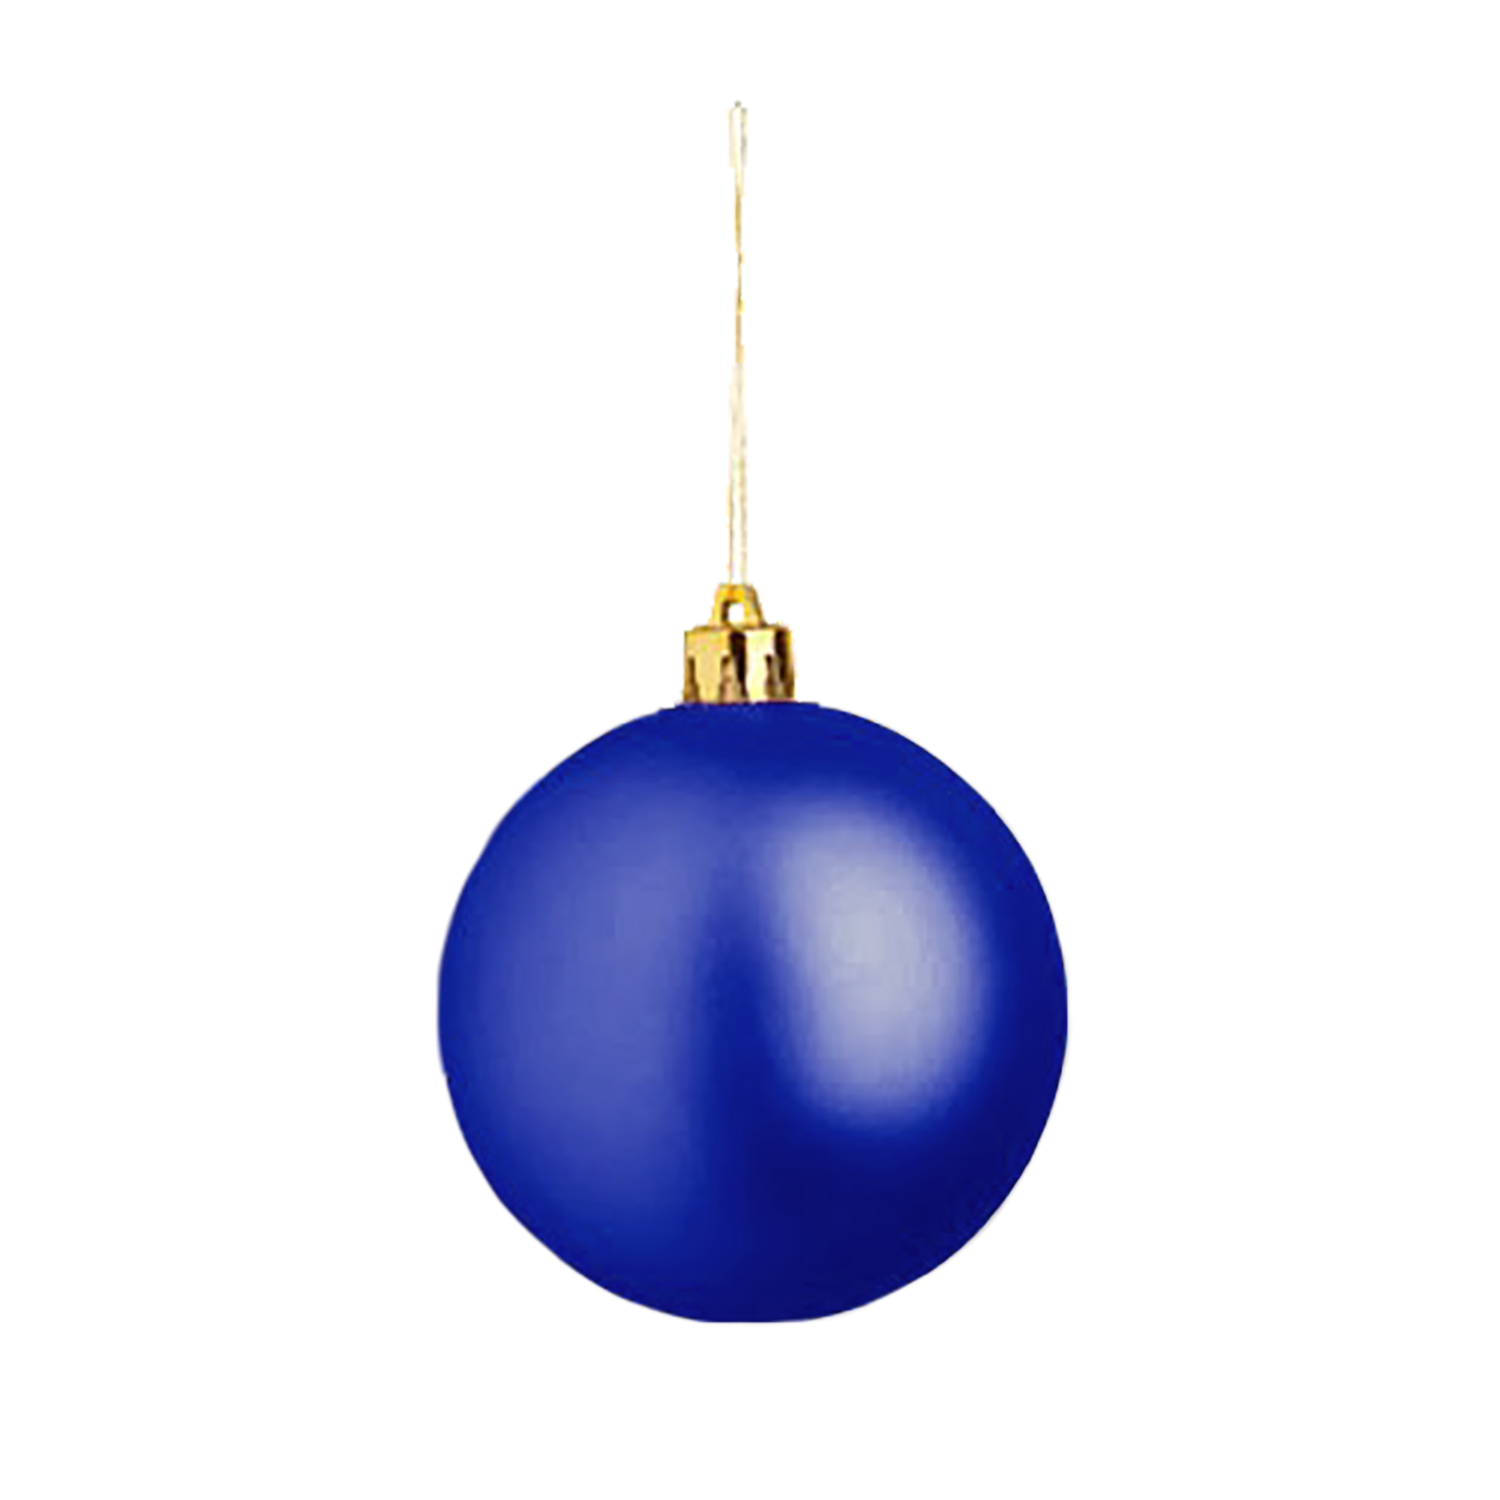 Christmas Ball (Christmas ornament 8cm) - hmi99099-07 (Blue)